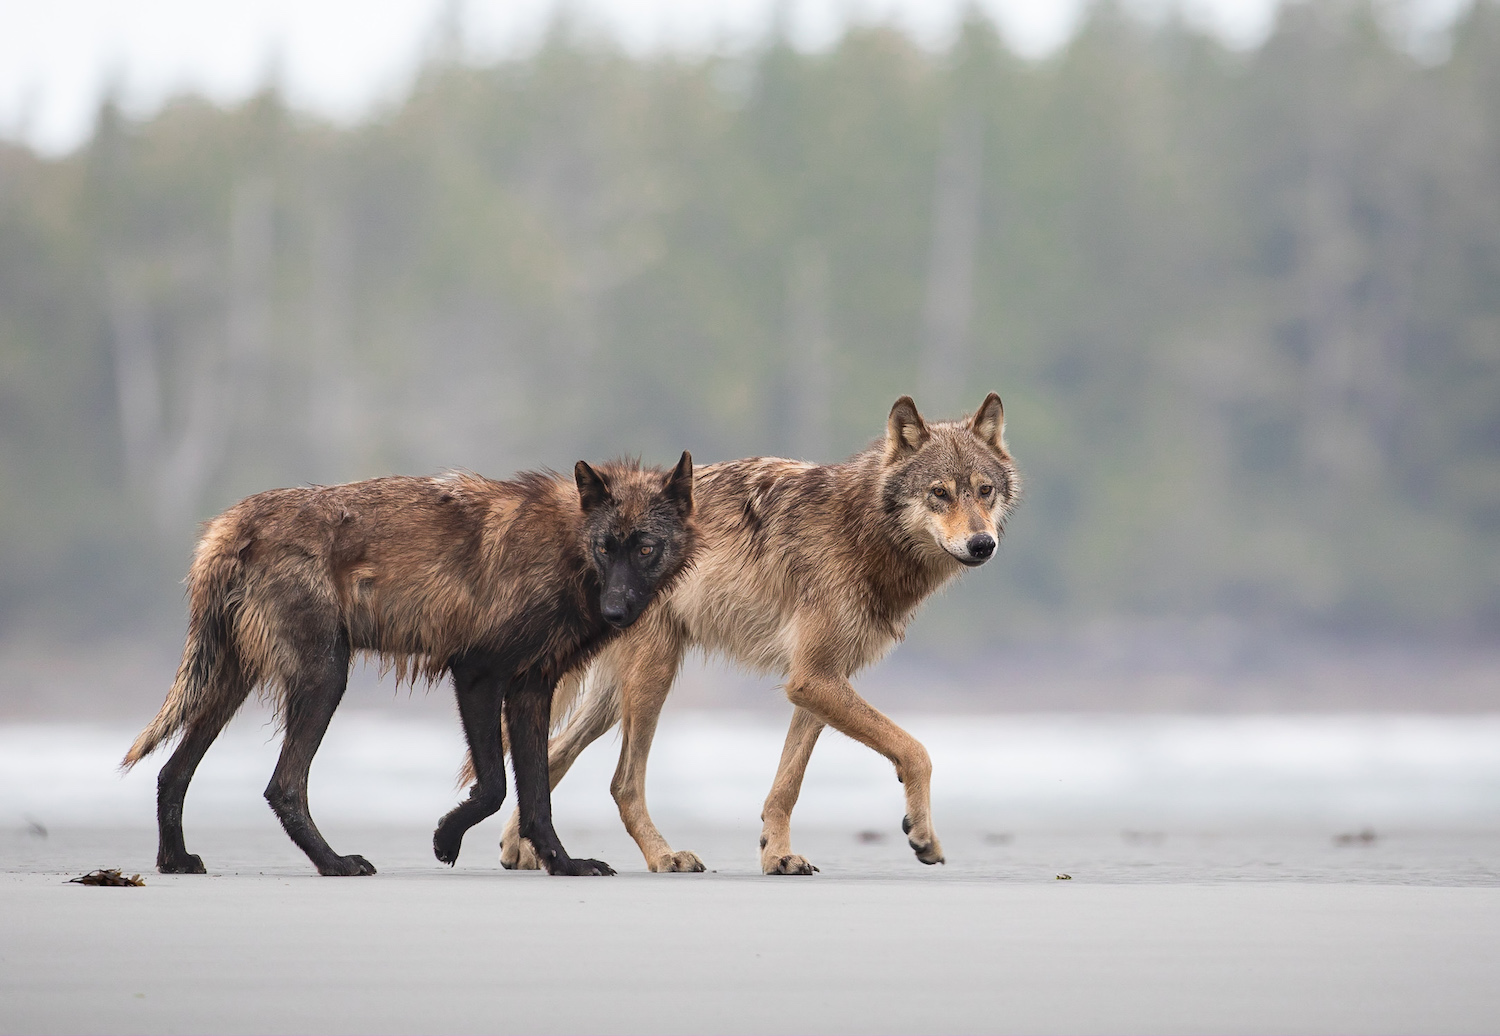 Wolves are just wolves